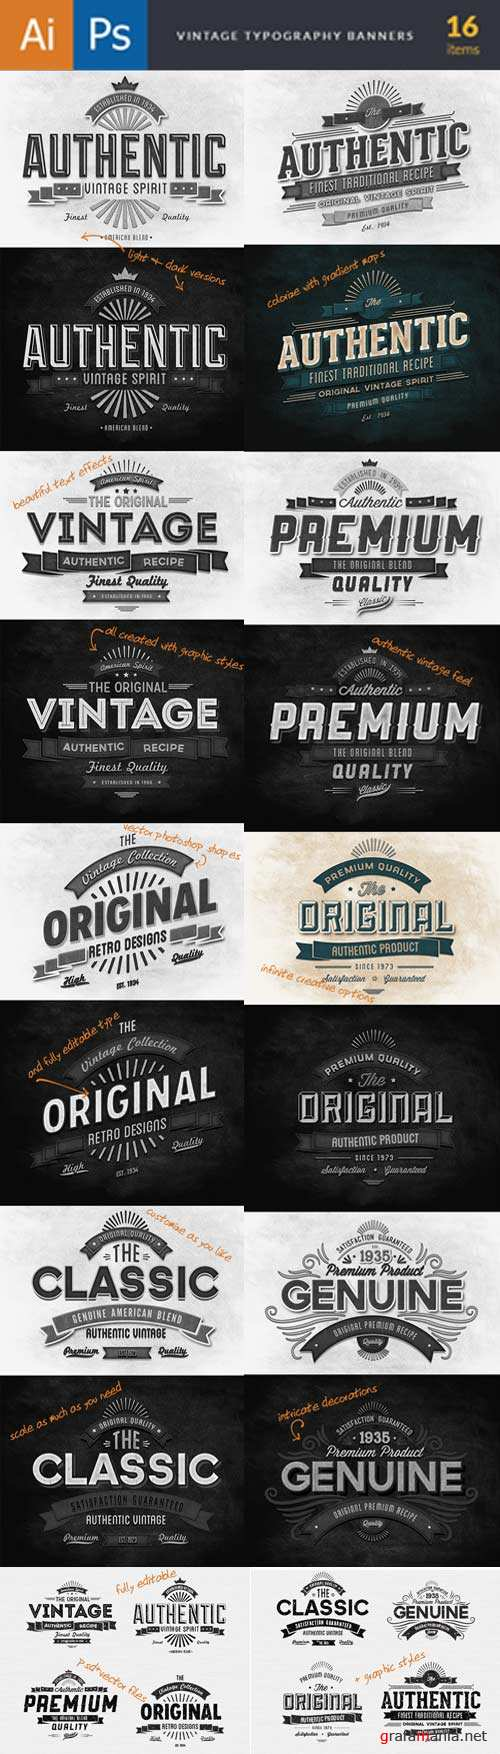 Super premium vintage typography V1 Type Banners